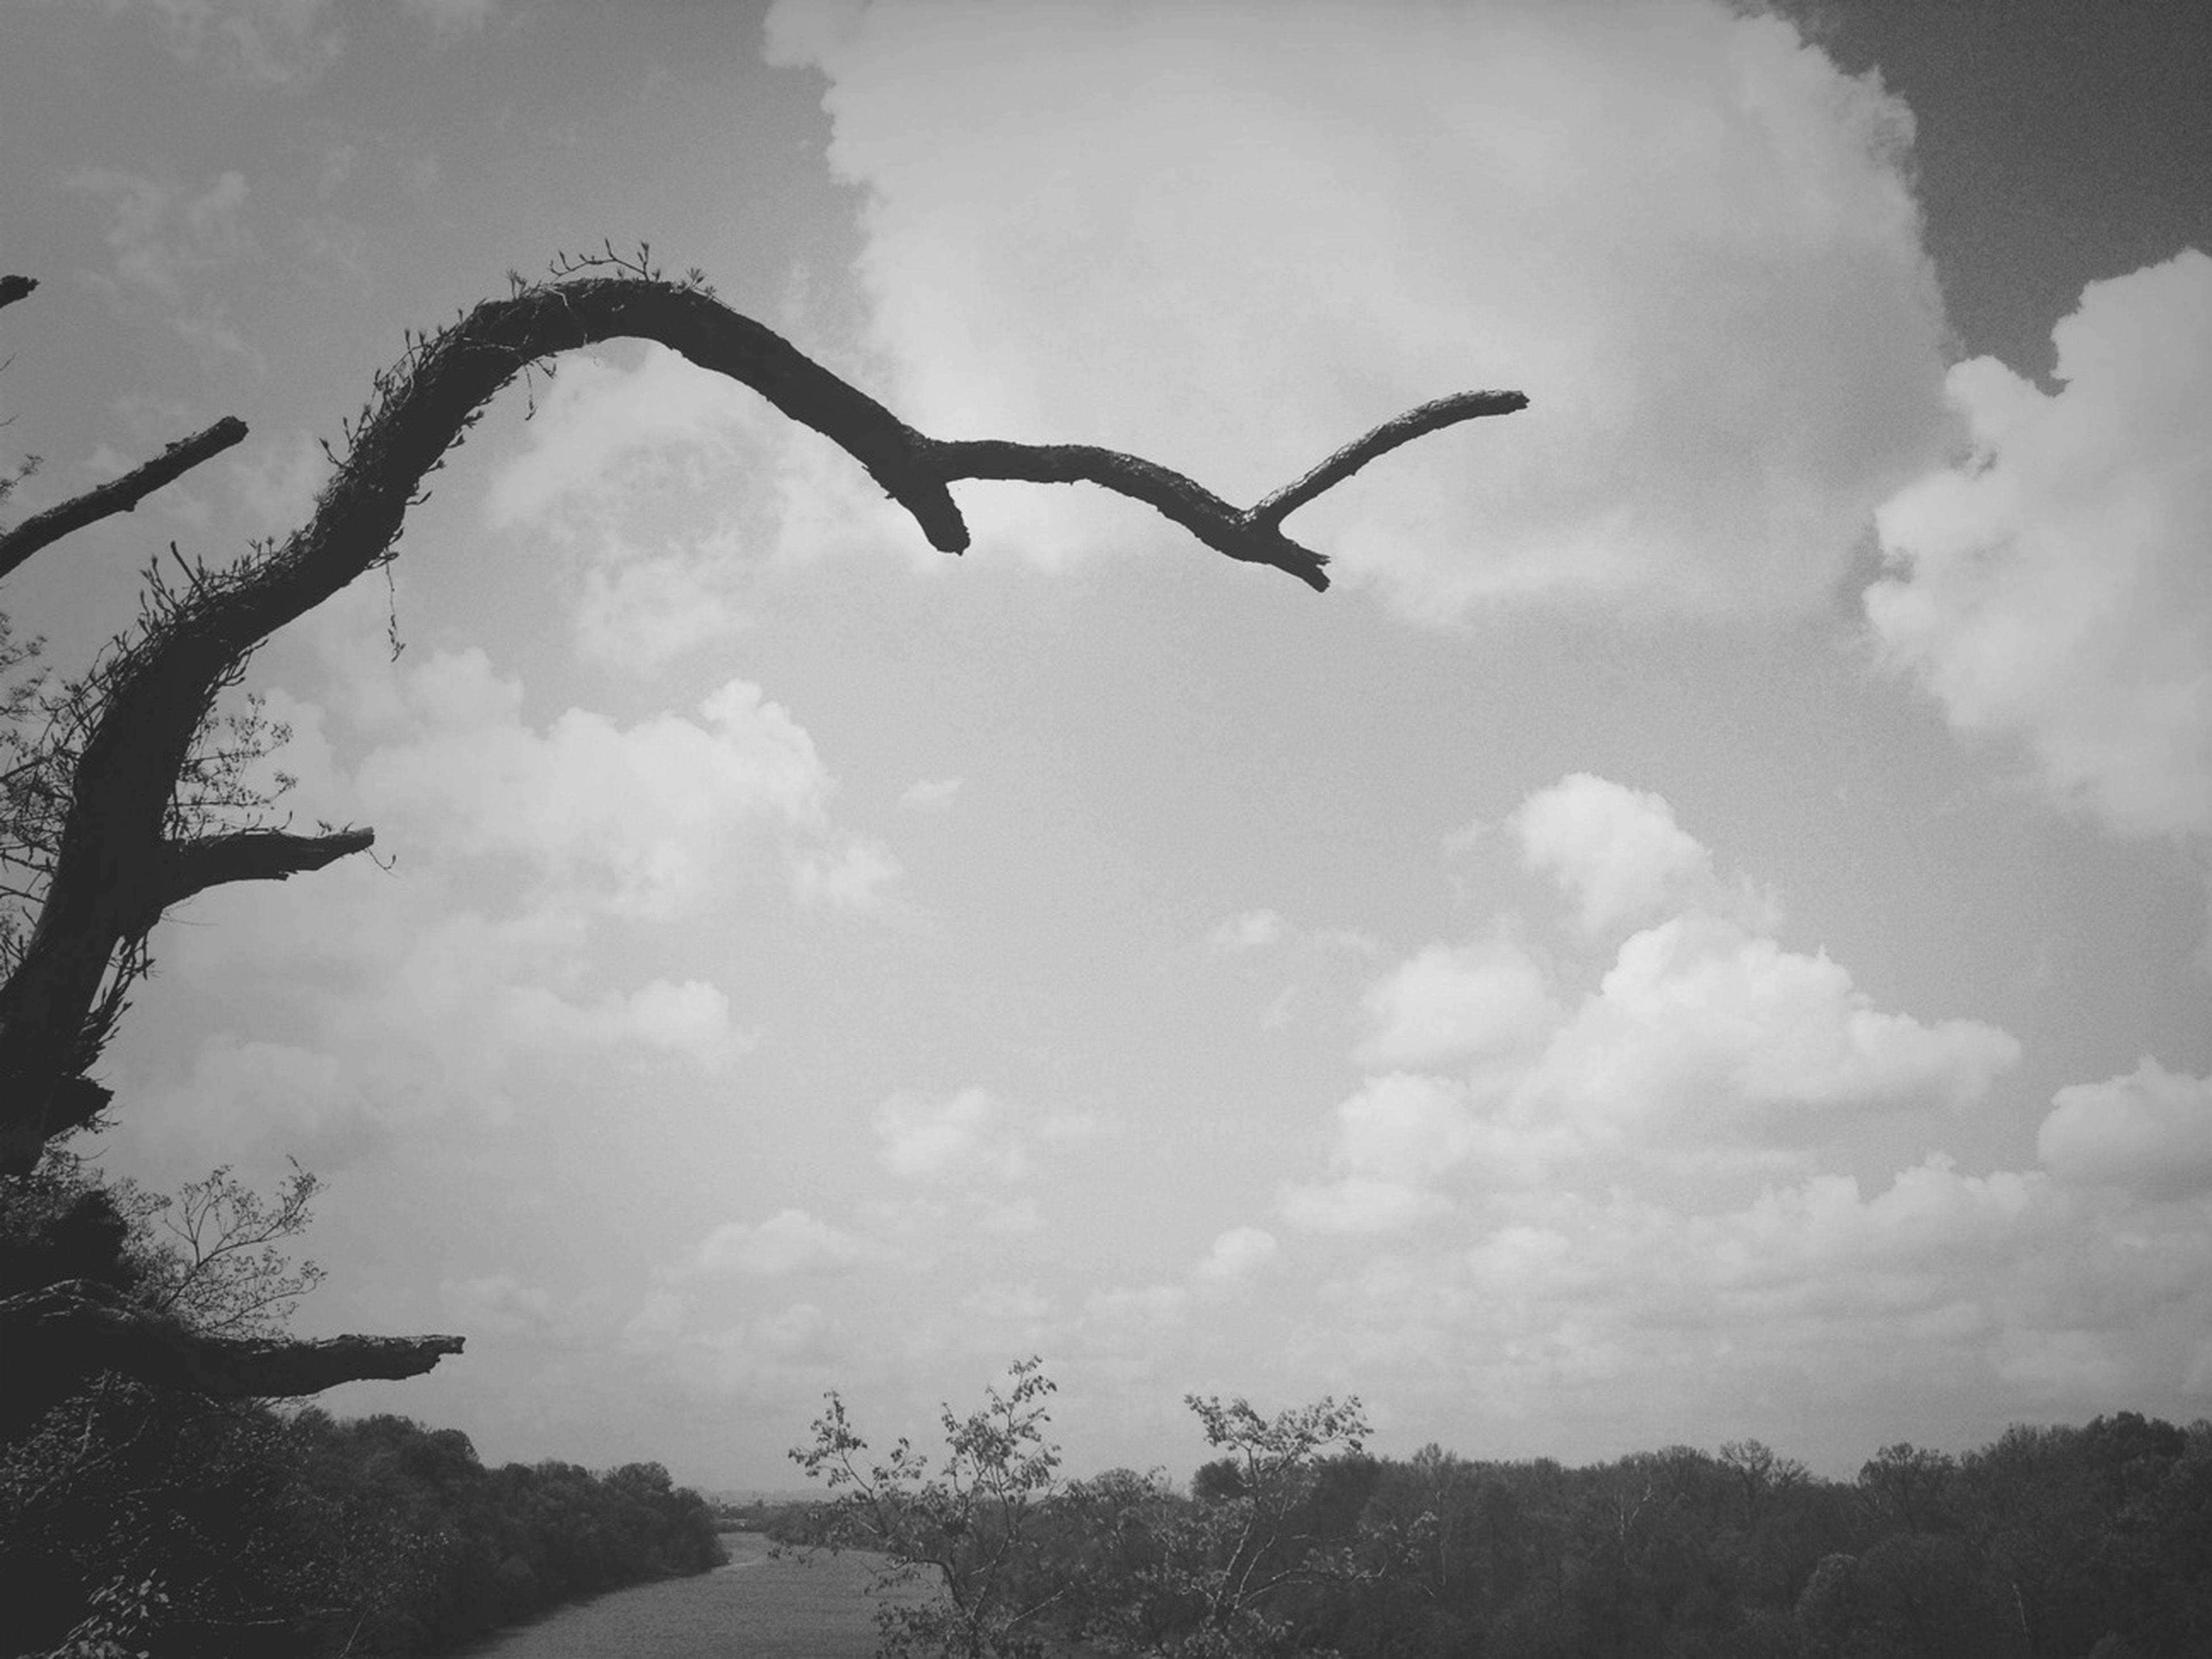 sky, cloud - sky, low angle view, tree, cloudy, bird, cloud, nature, tranquility, flying, beauty in nature, tranquil scene, scenics, silhouette, animal themes, day, outdoors, mid-air, animals in the wild, no people